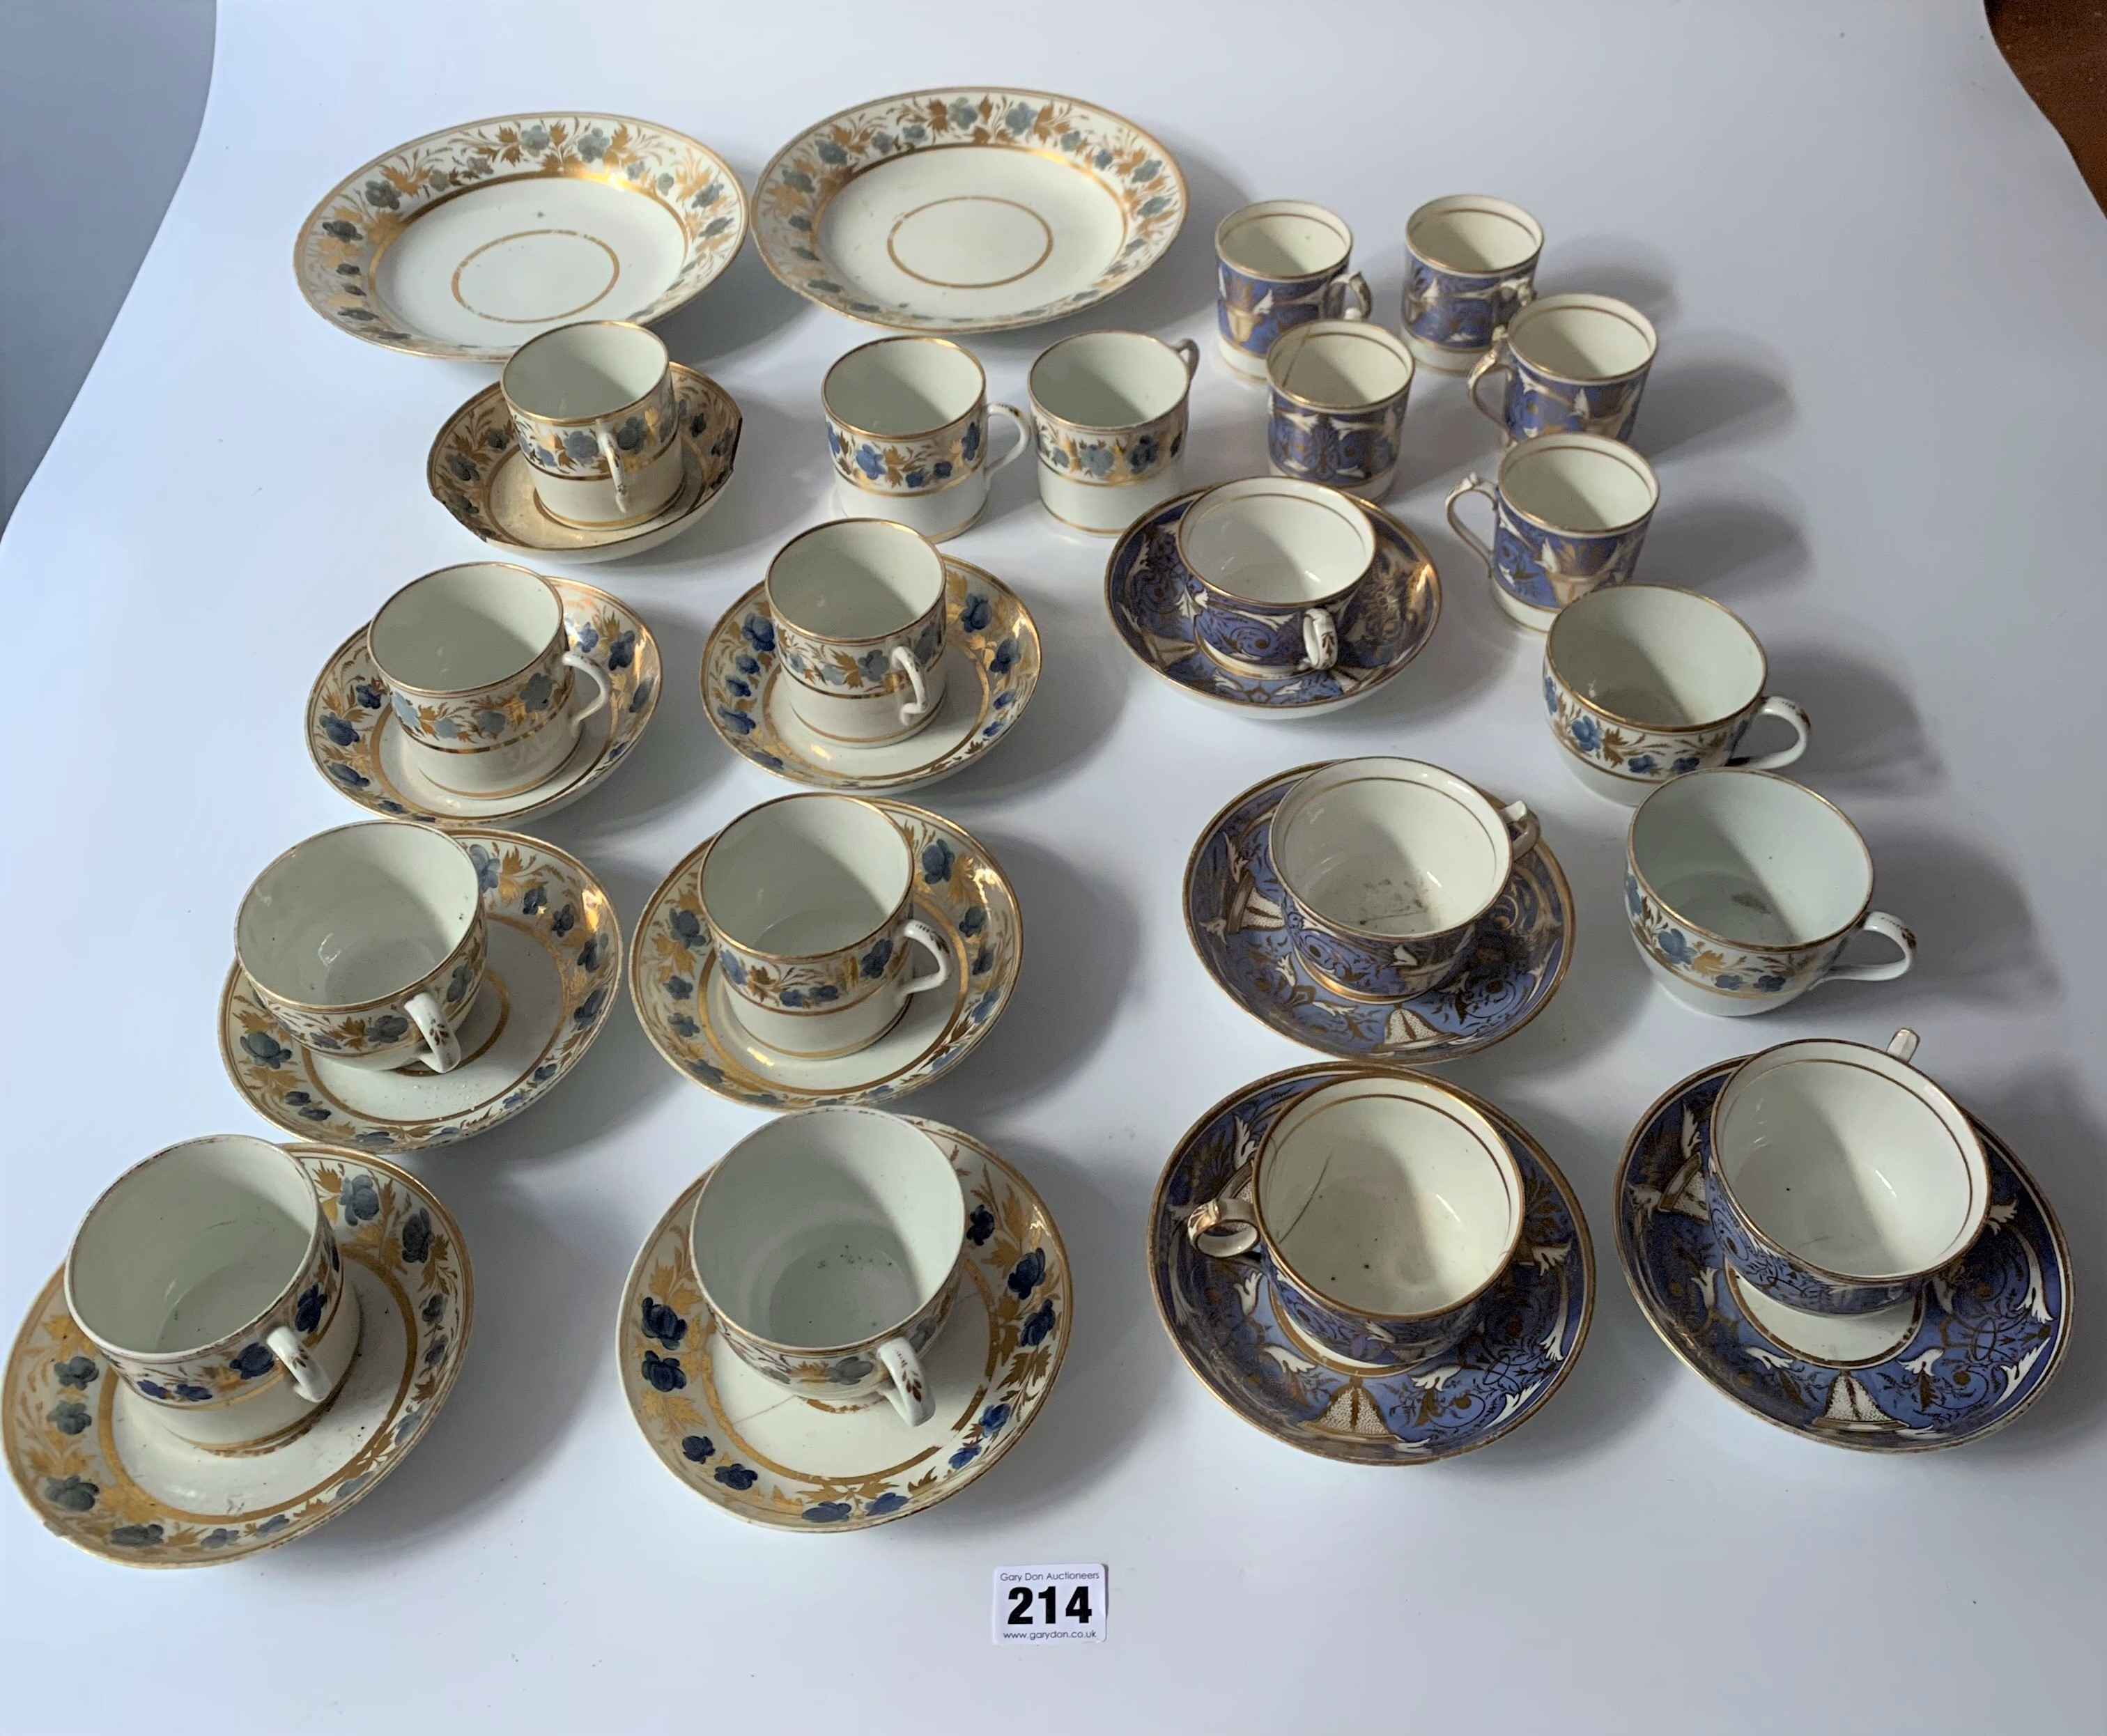 2 part blue/gilt tea and coffee sets - Image 2 of 6